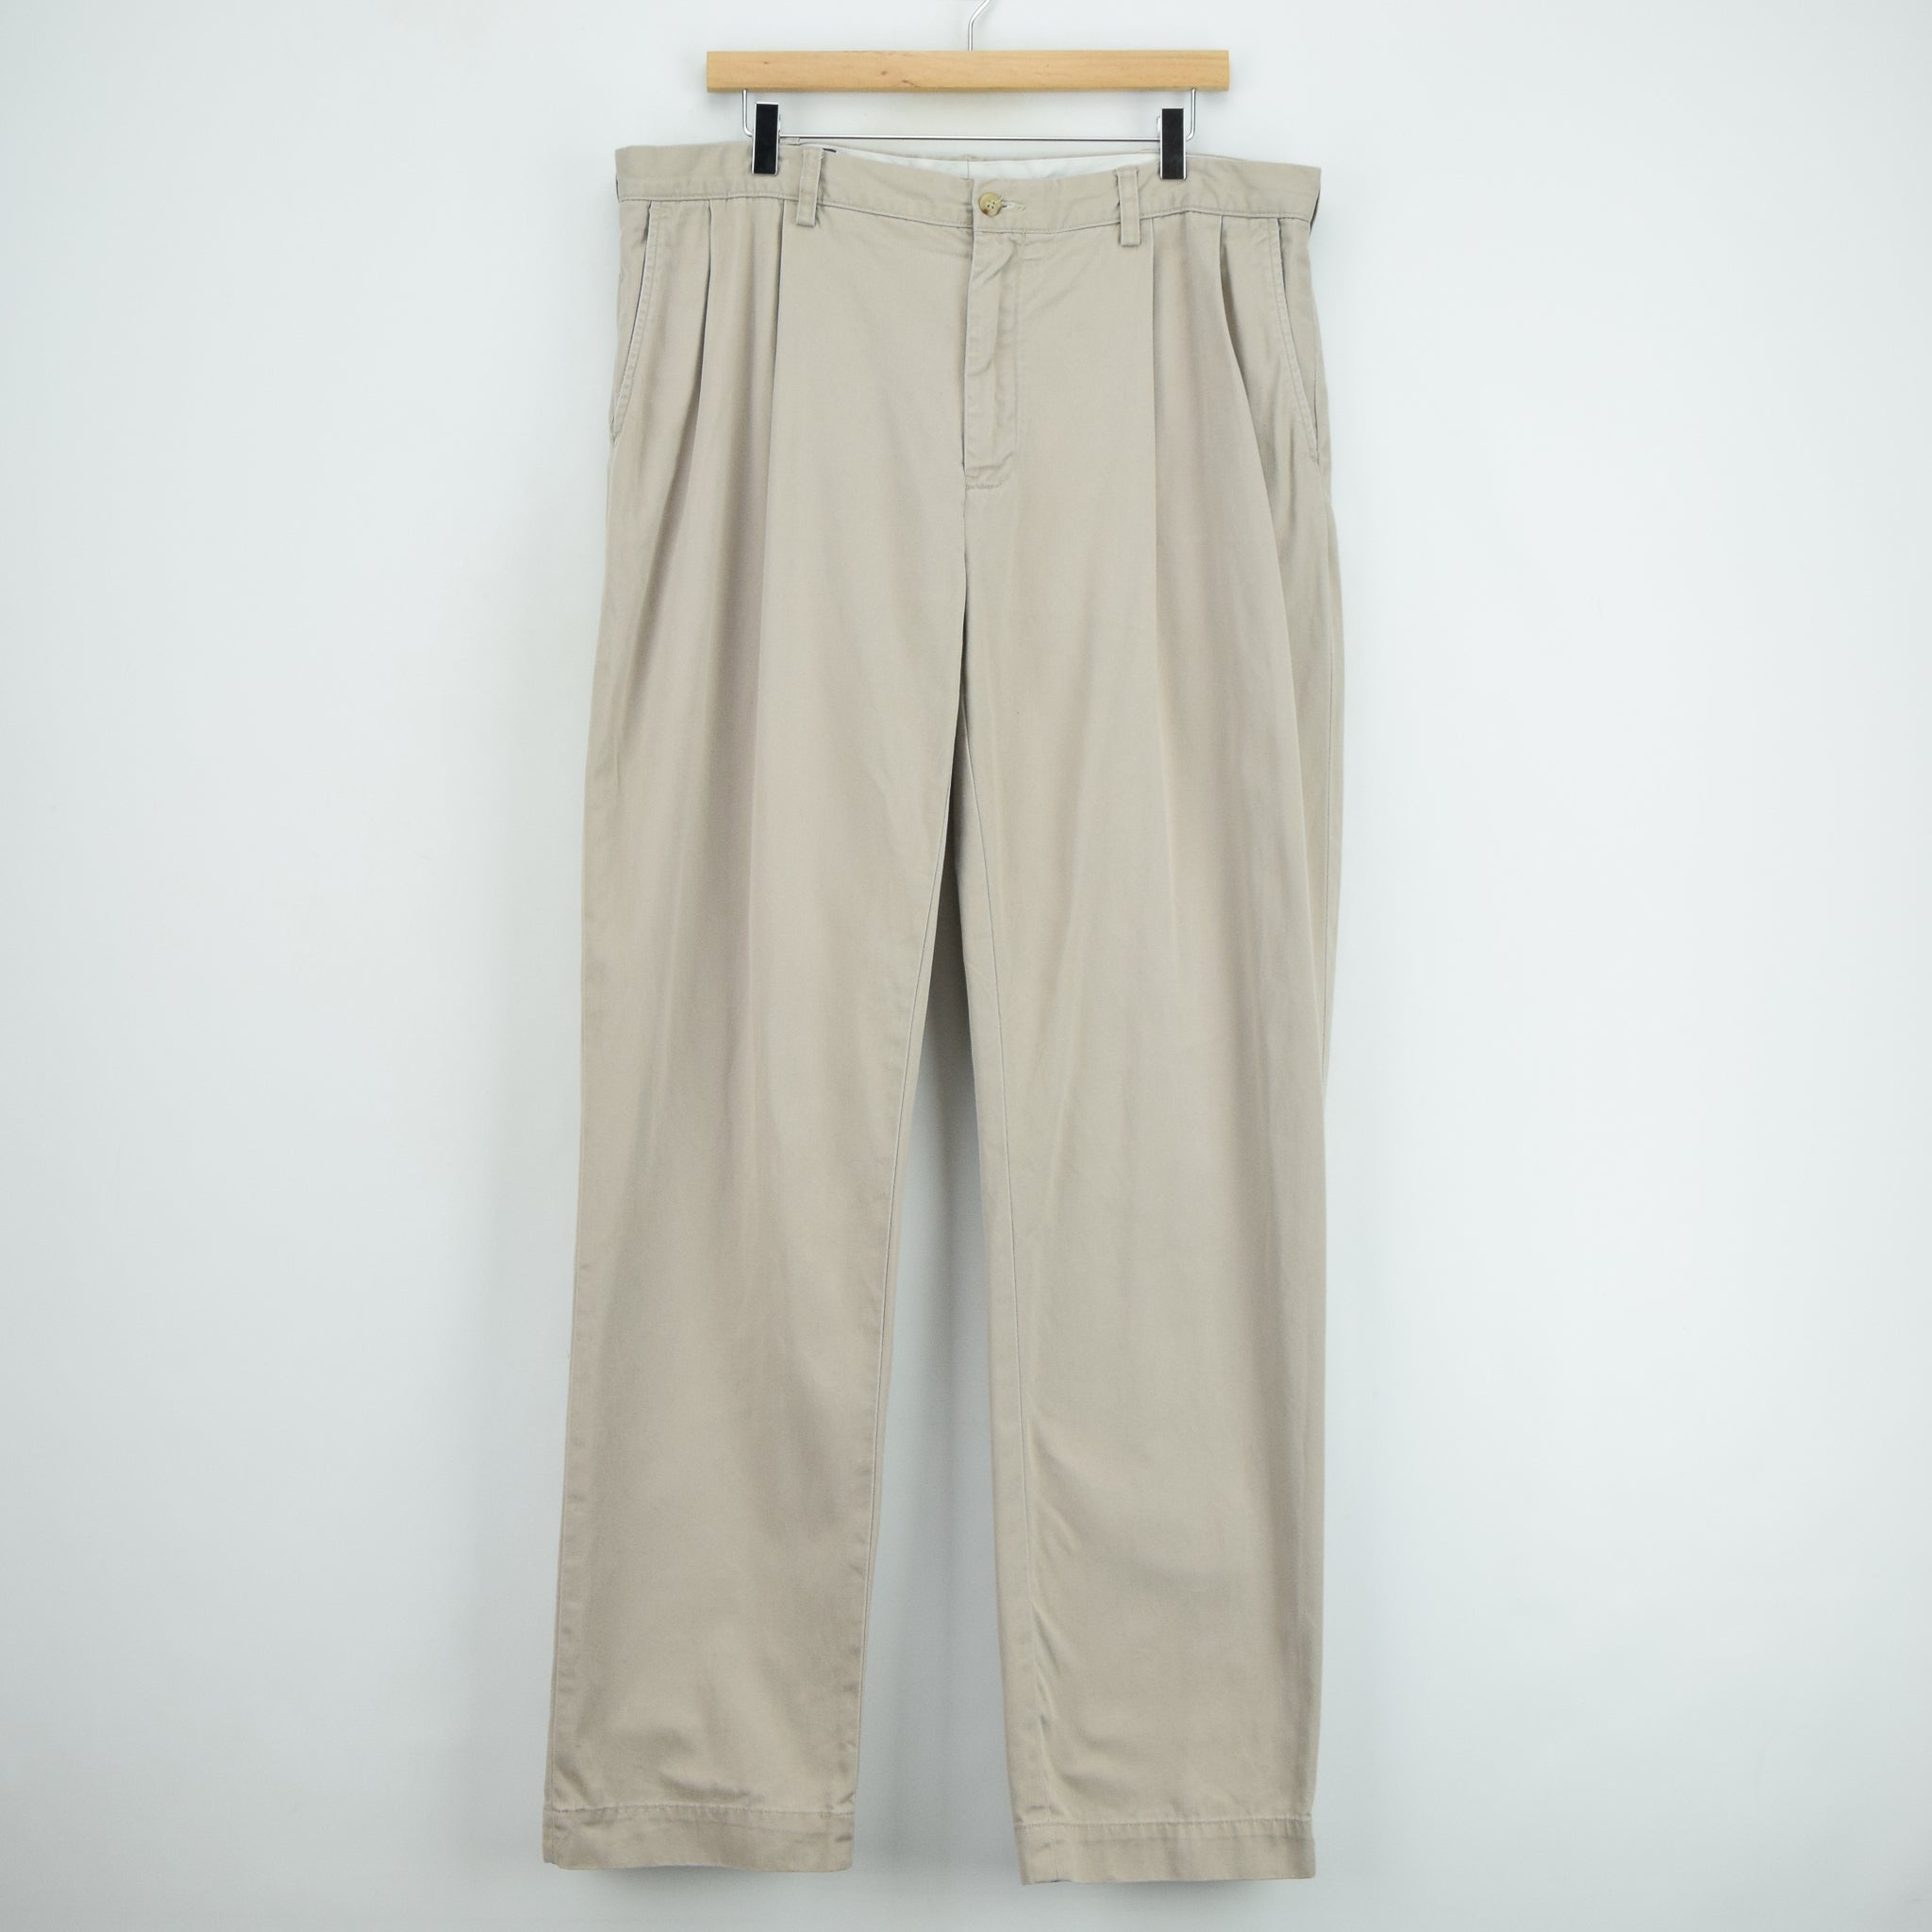 Ralph Lauren Polo Prospect Pant Chinos Stone Pleated Front Trousers 36 W 34 L front